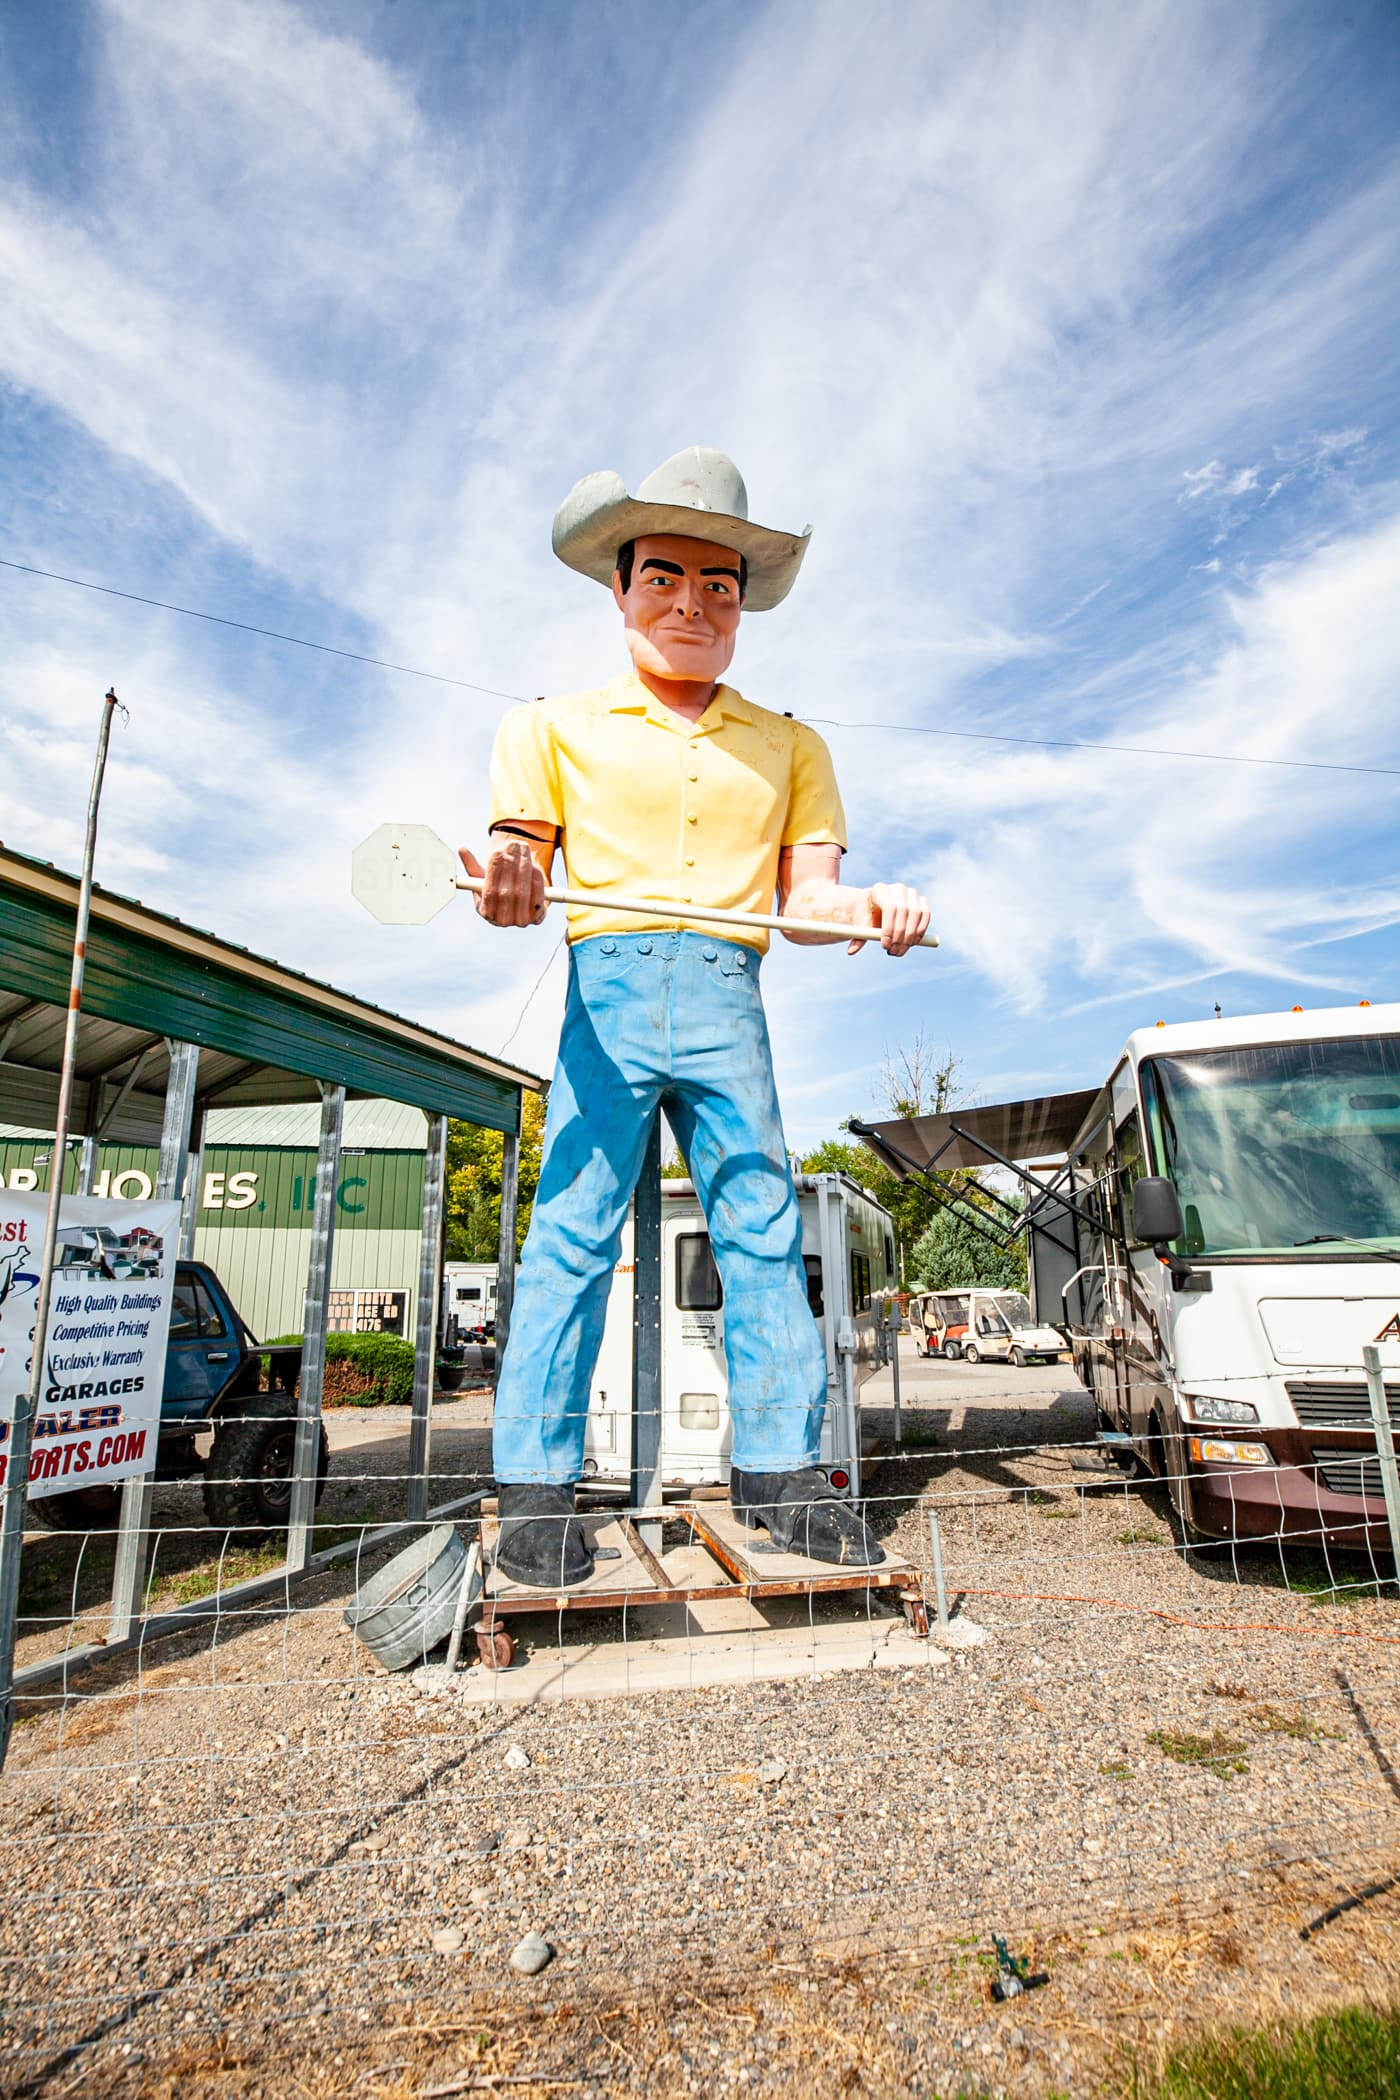 Cowboy Muffler Man in Wendell, Idaho | Idaho Roadside Attractions